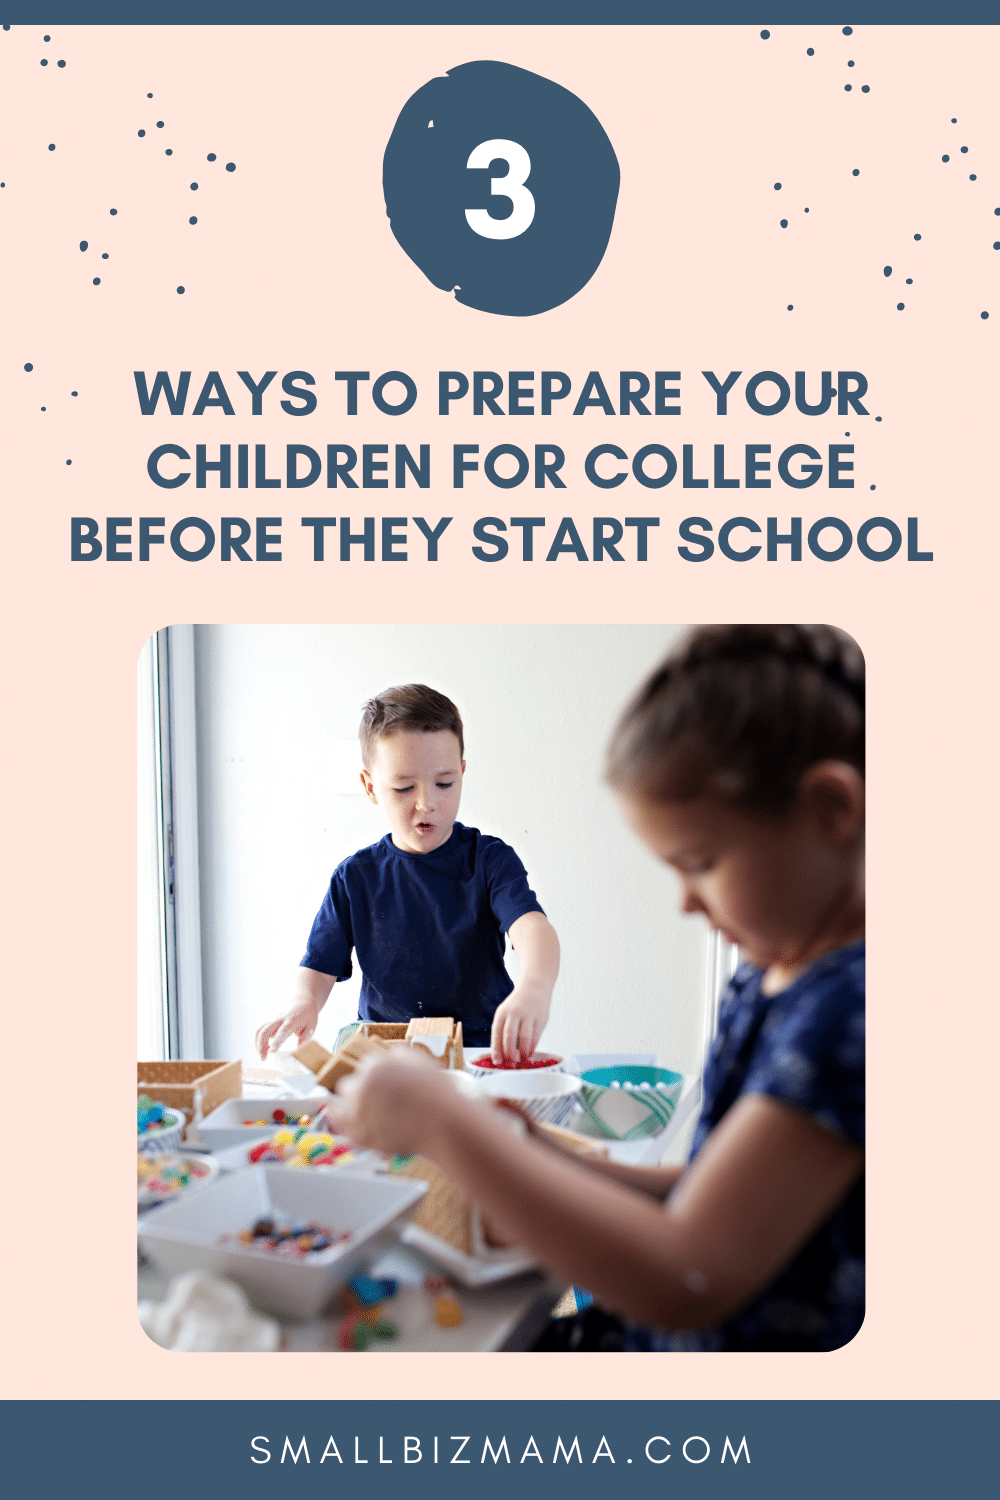 3 ways to prepare your children for college before they start school